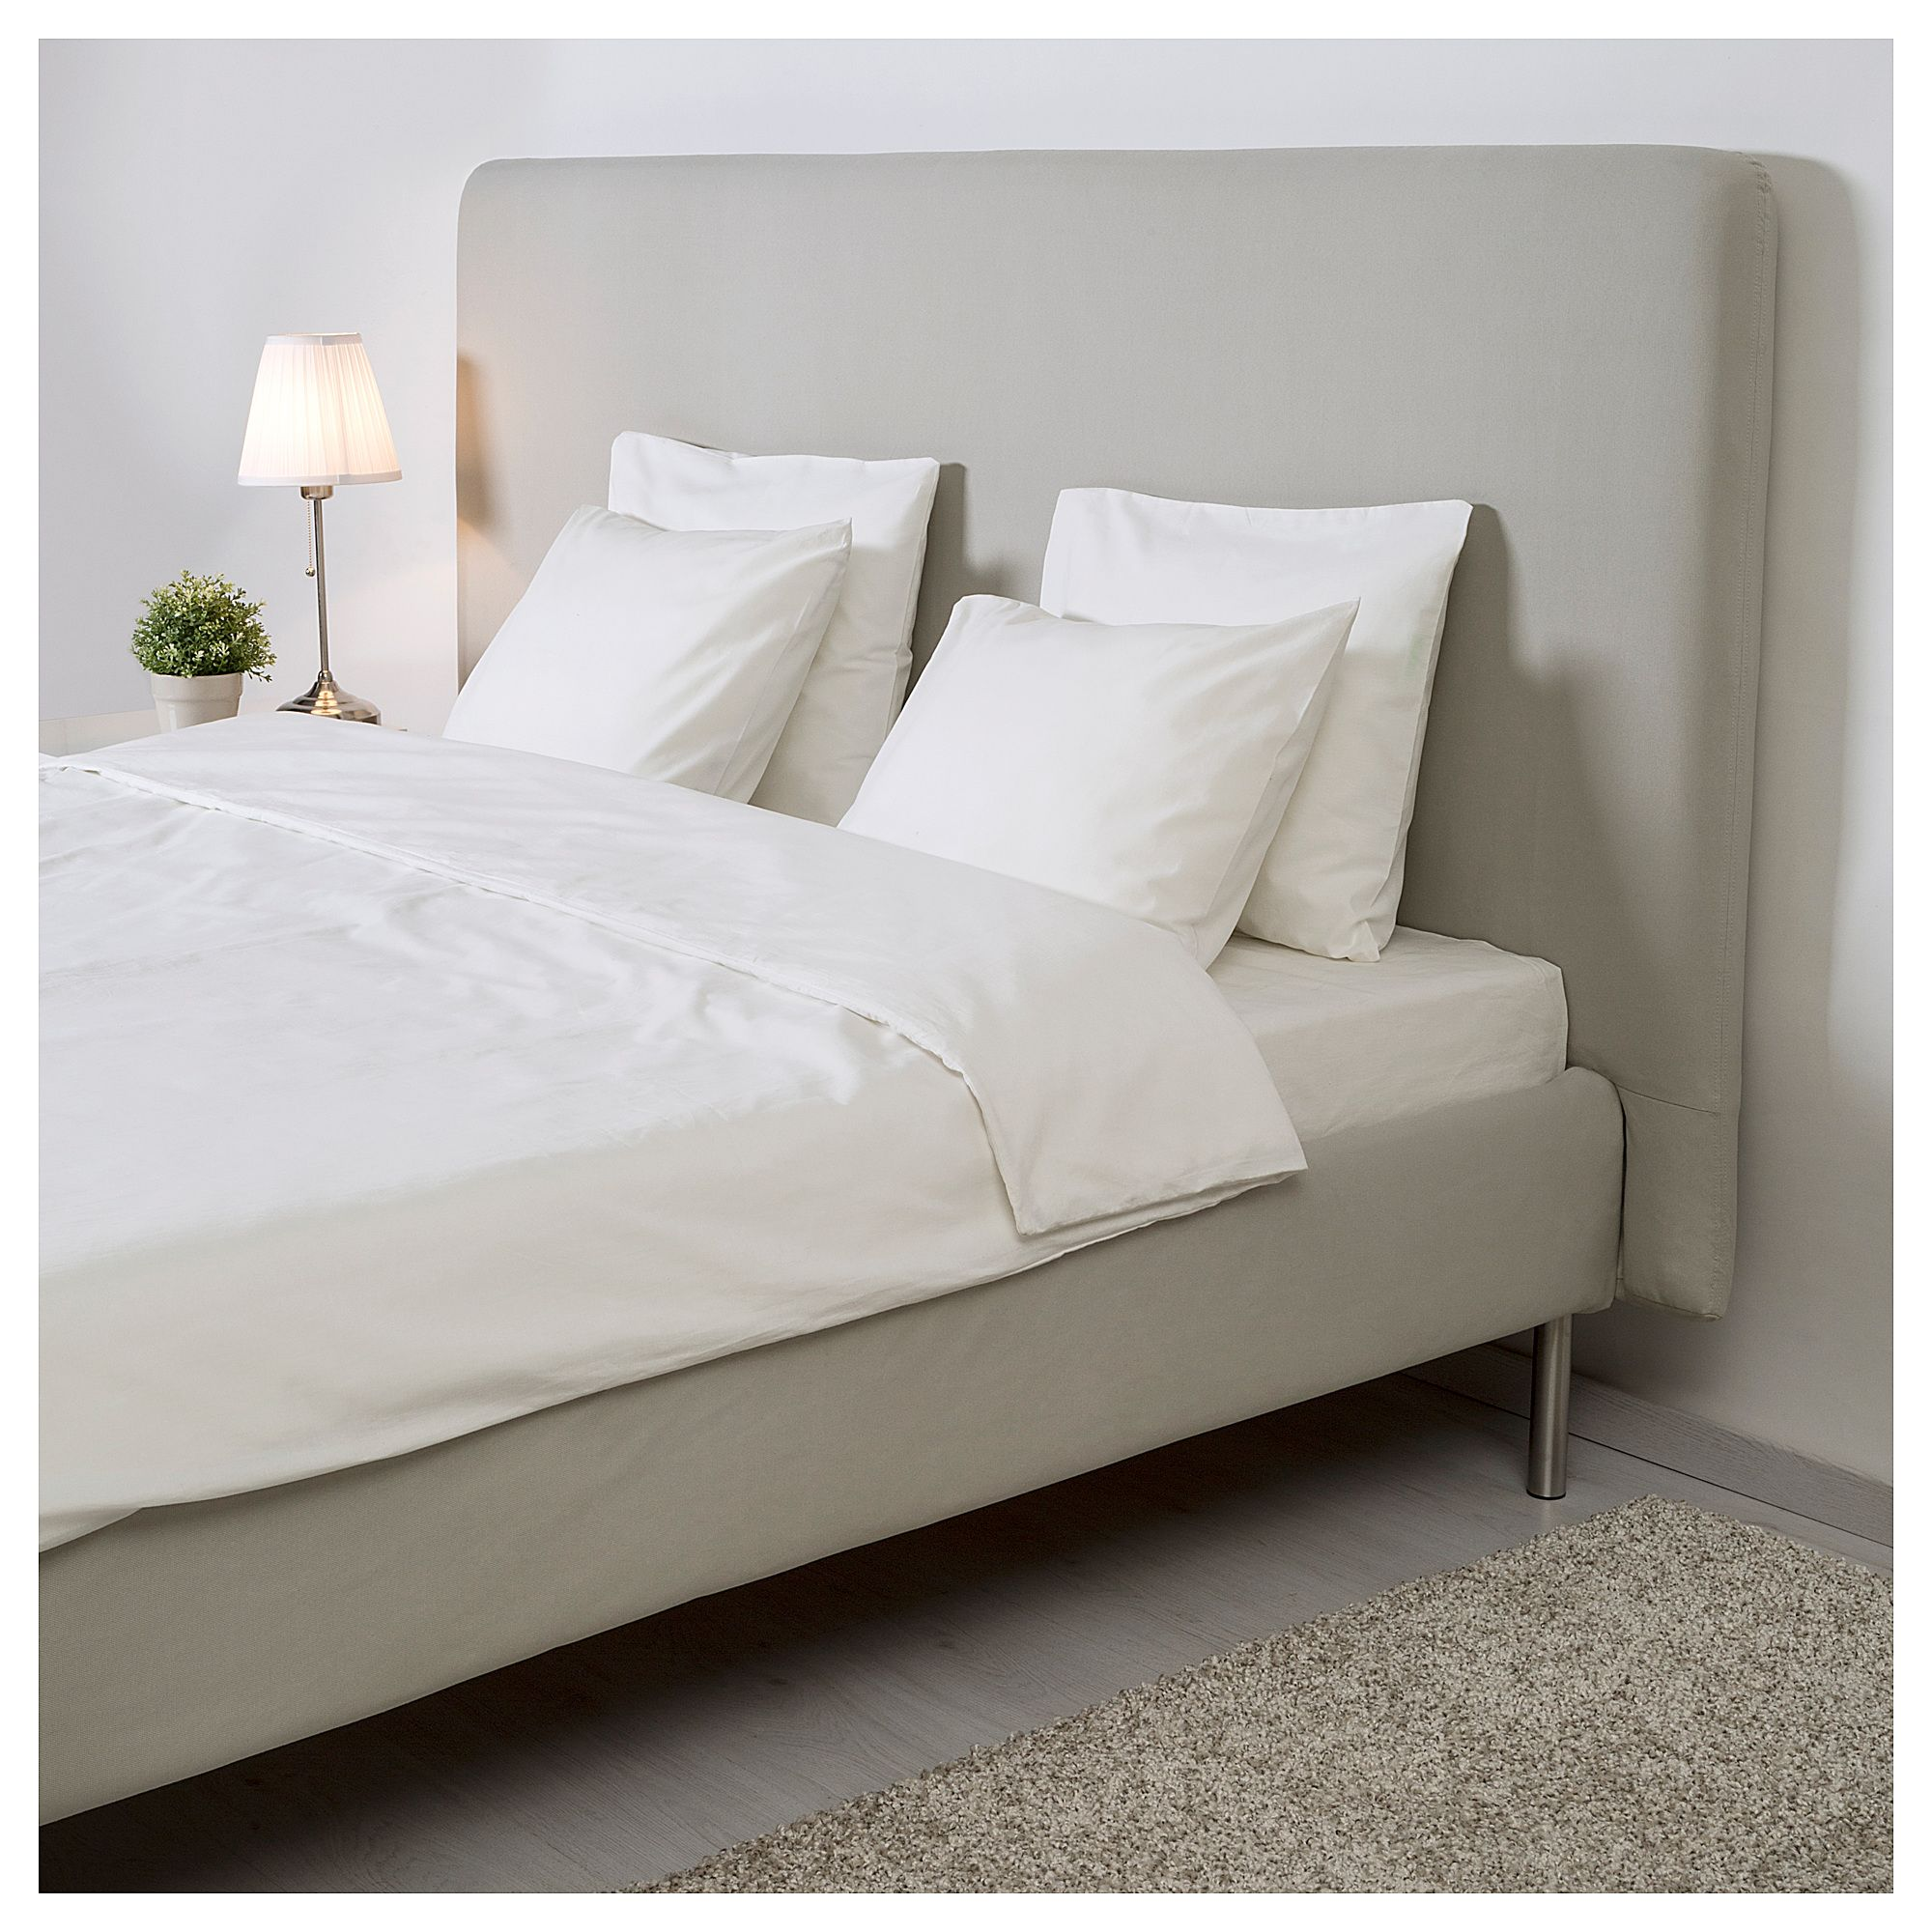 Tomrefjord Bed Frame Beige In 2019 Products Pinterest Bed